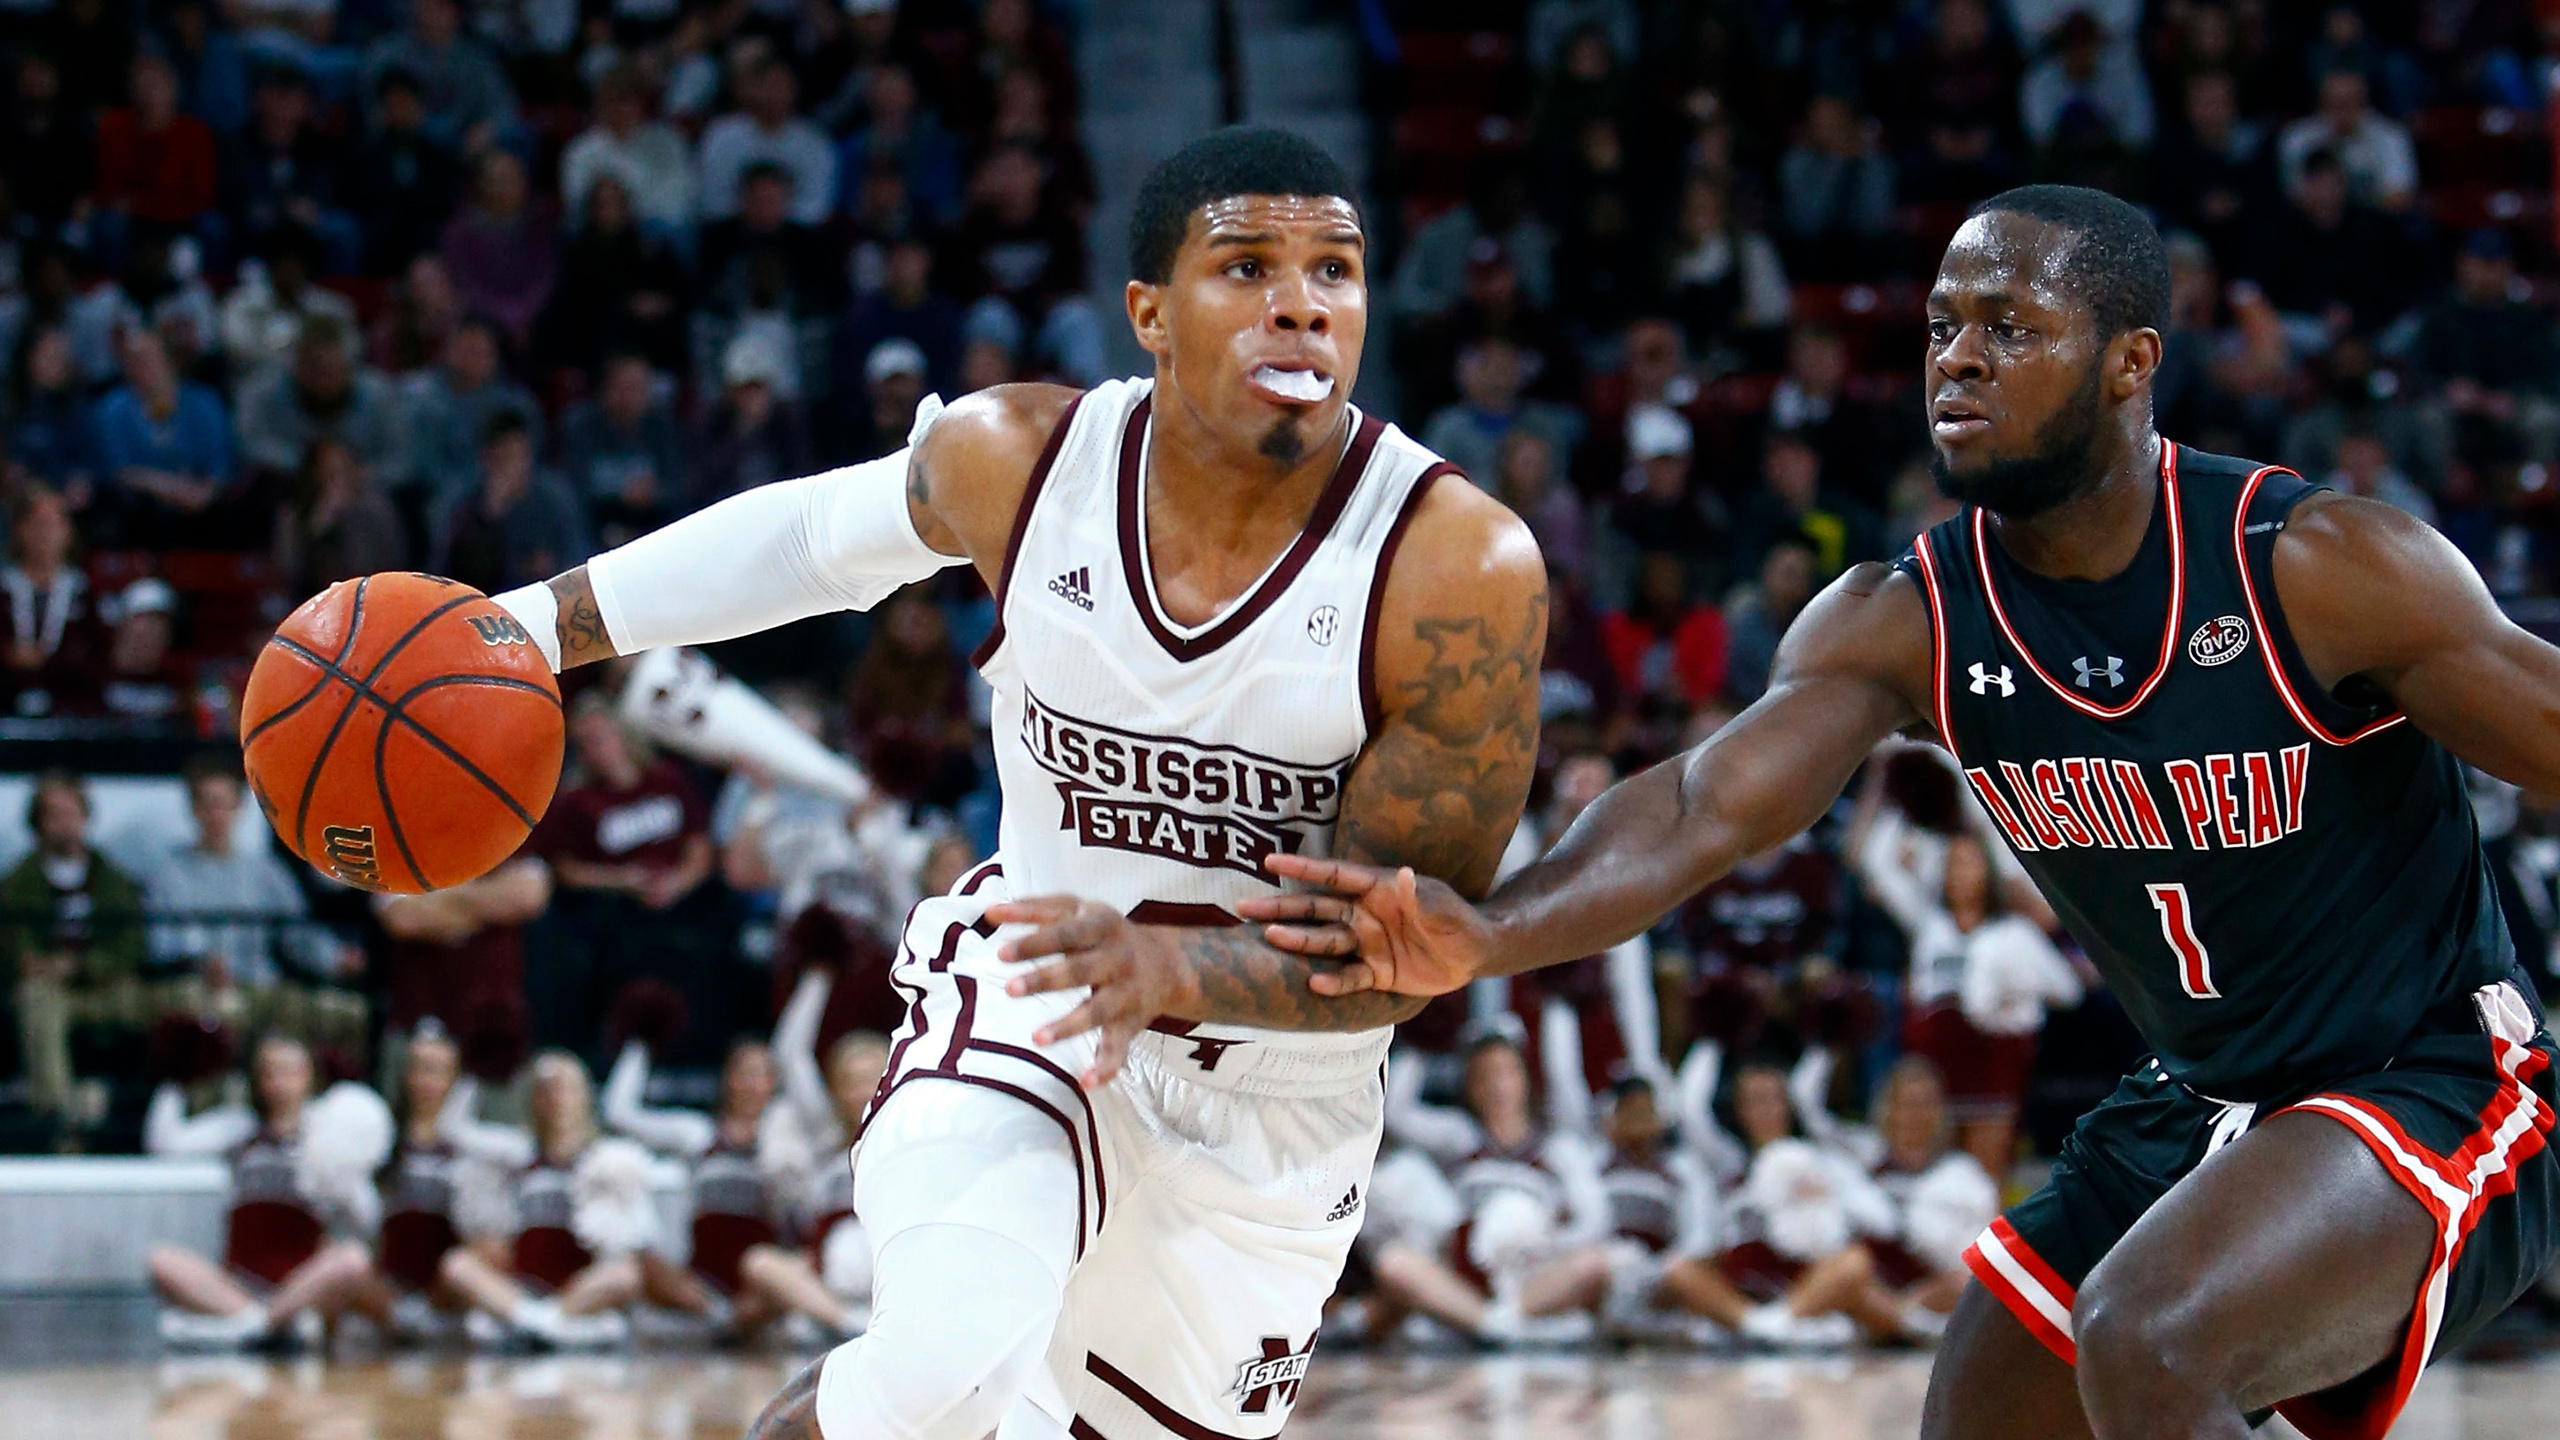 Cincinnati vs. #18 Mississippi State (M Basketball)